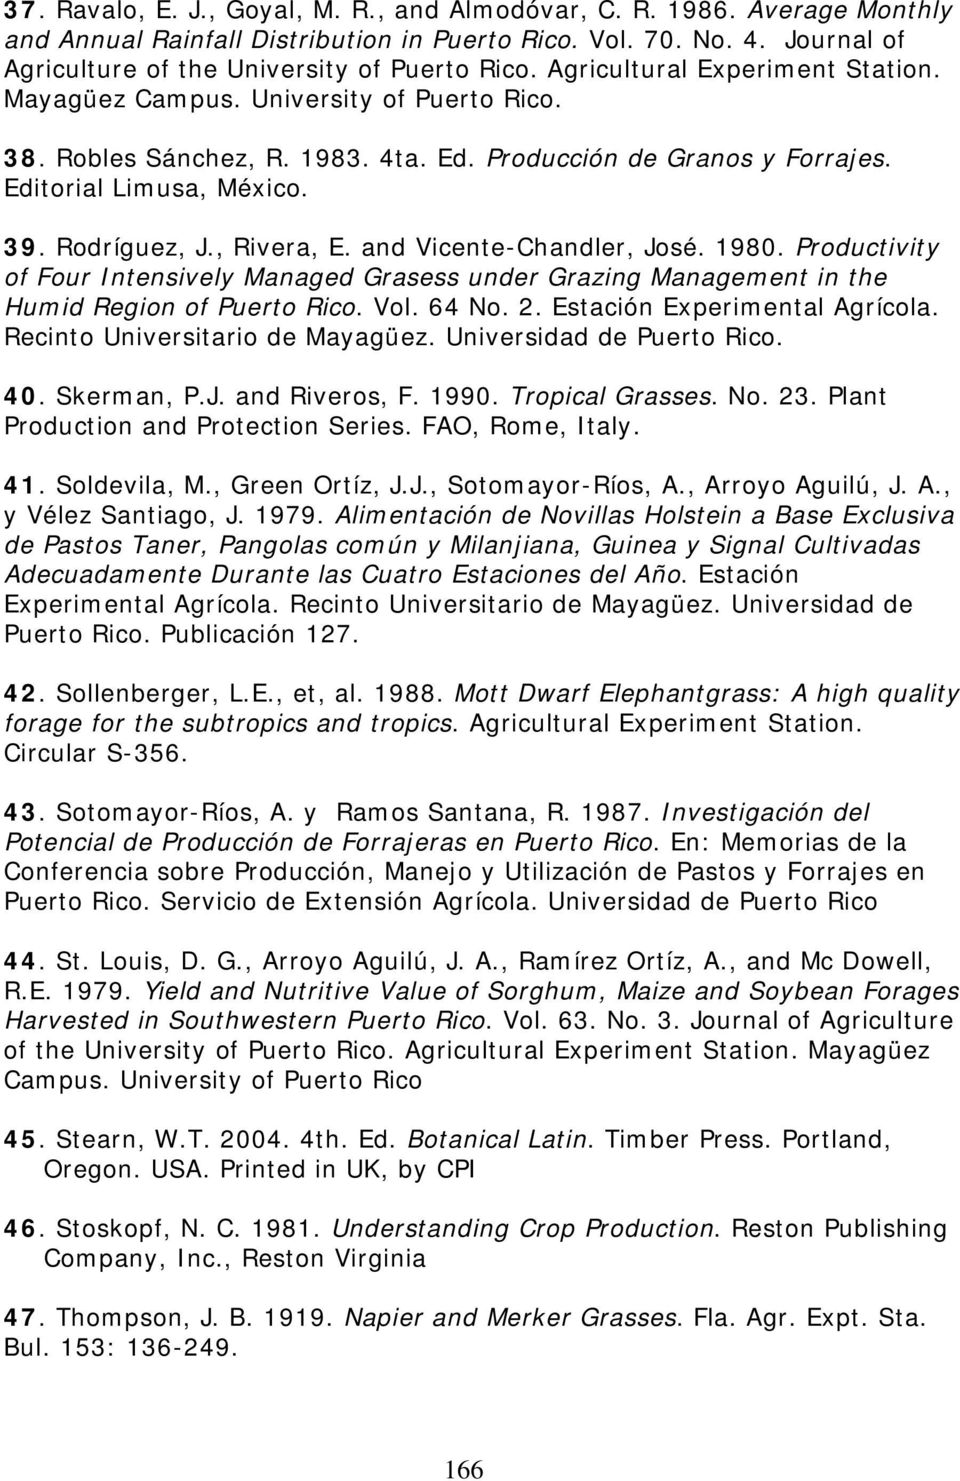 , Rivera, E. and Vicente-Chandler, José. 1980. Productivity of Four Intensively Managed Grasess under Grazing Management in the Humid Region of Puerto Rico. Vol. 64 No. 2.